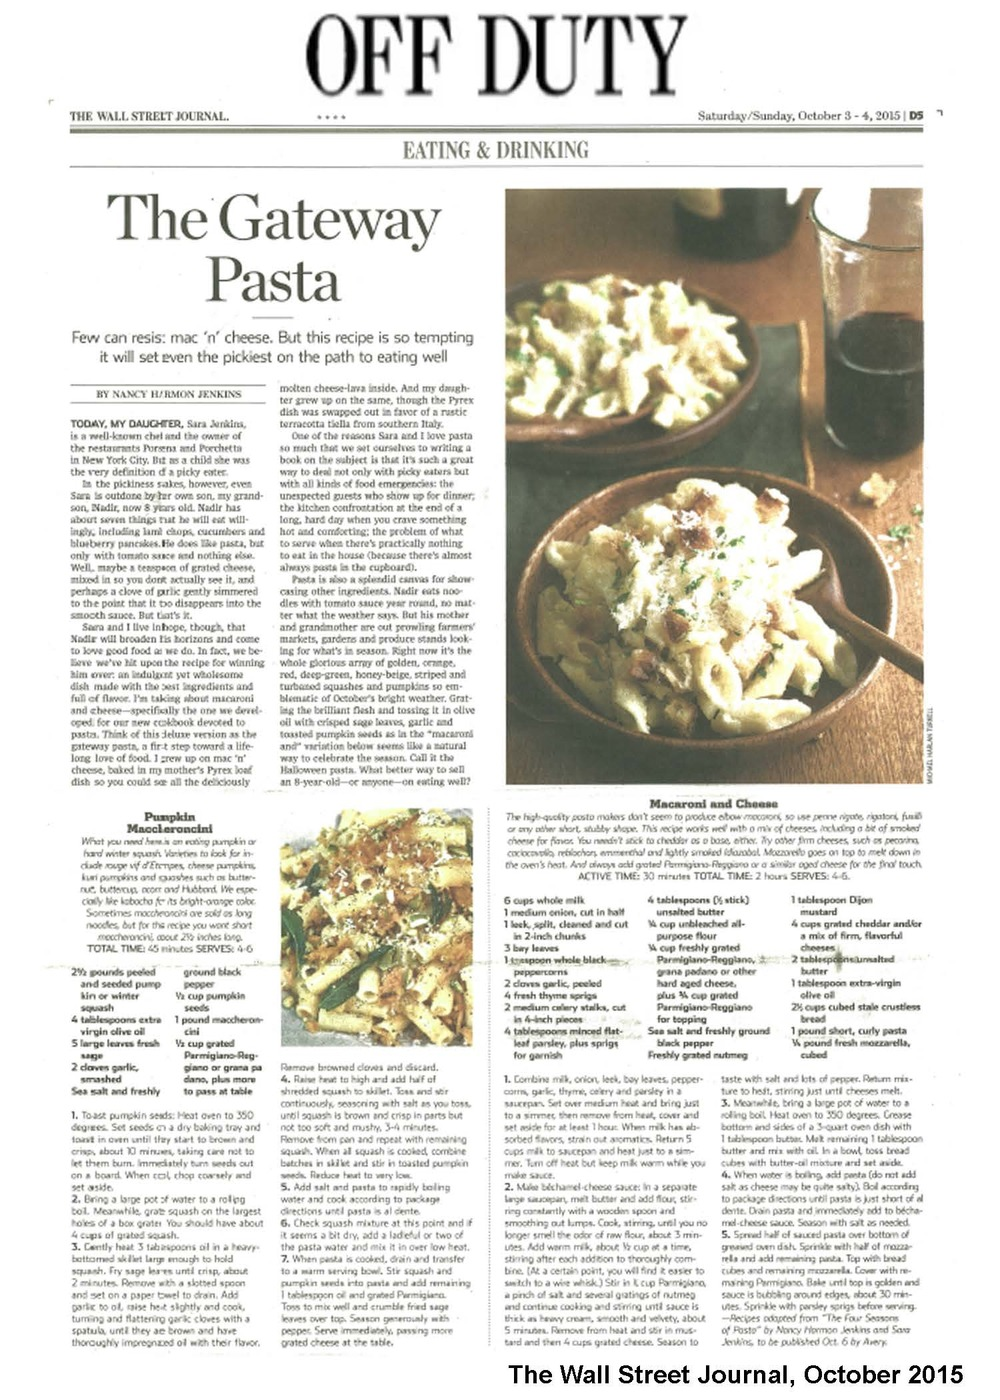 WEBSITE_WSJ Off Duty_Four Seasons of Pasta_October 2015.jpg